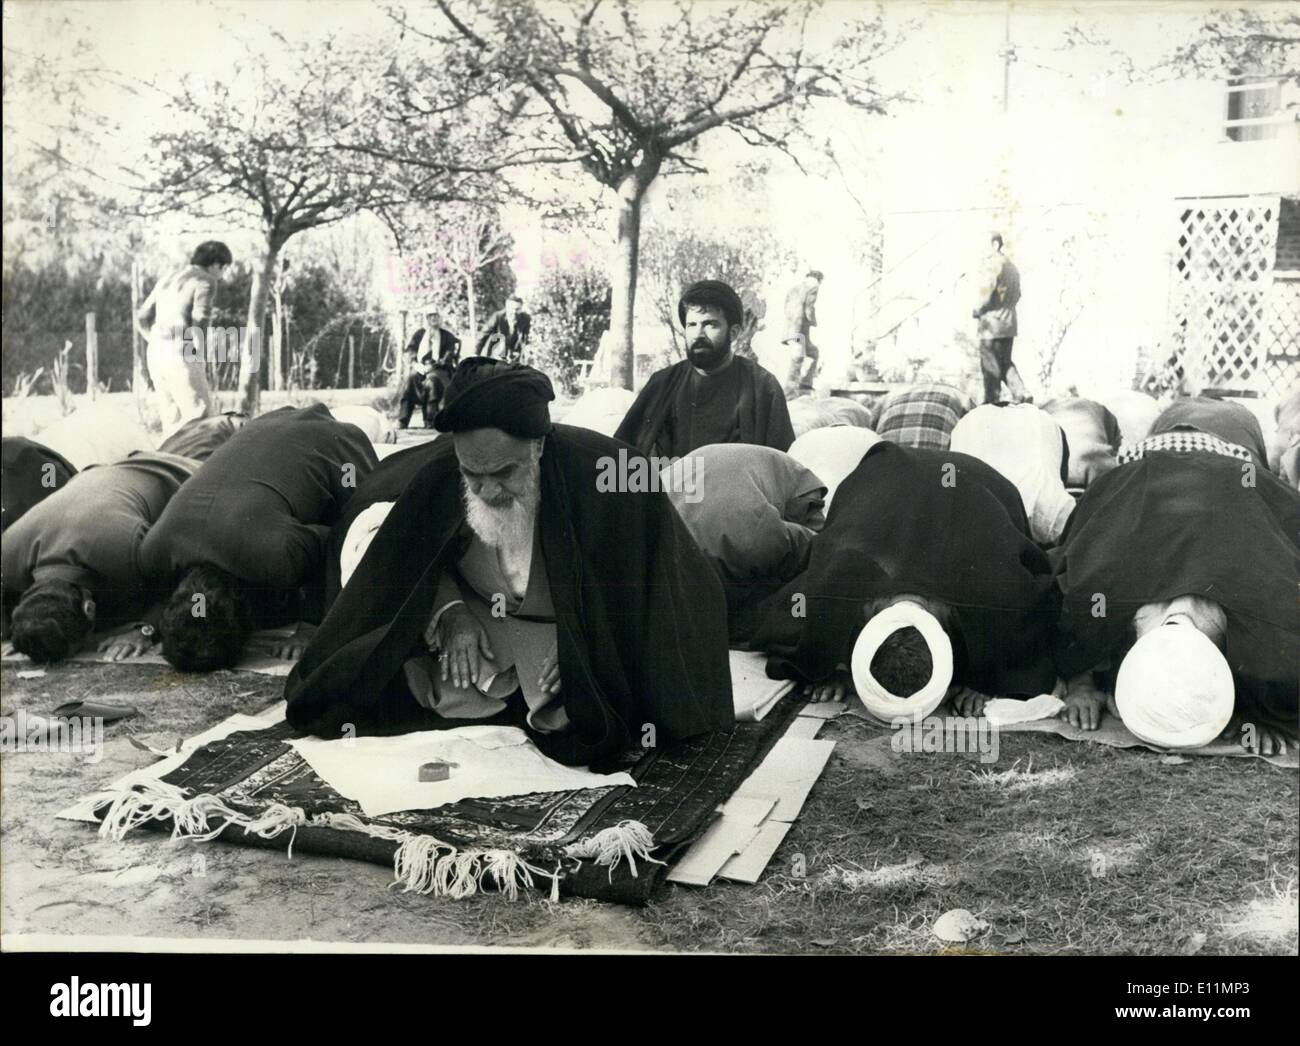 Dec. 04, 1978 - The Ayatollah Kohemeini and others at prayer in France Stock Photo